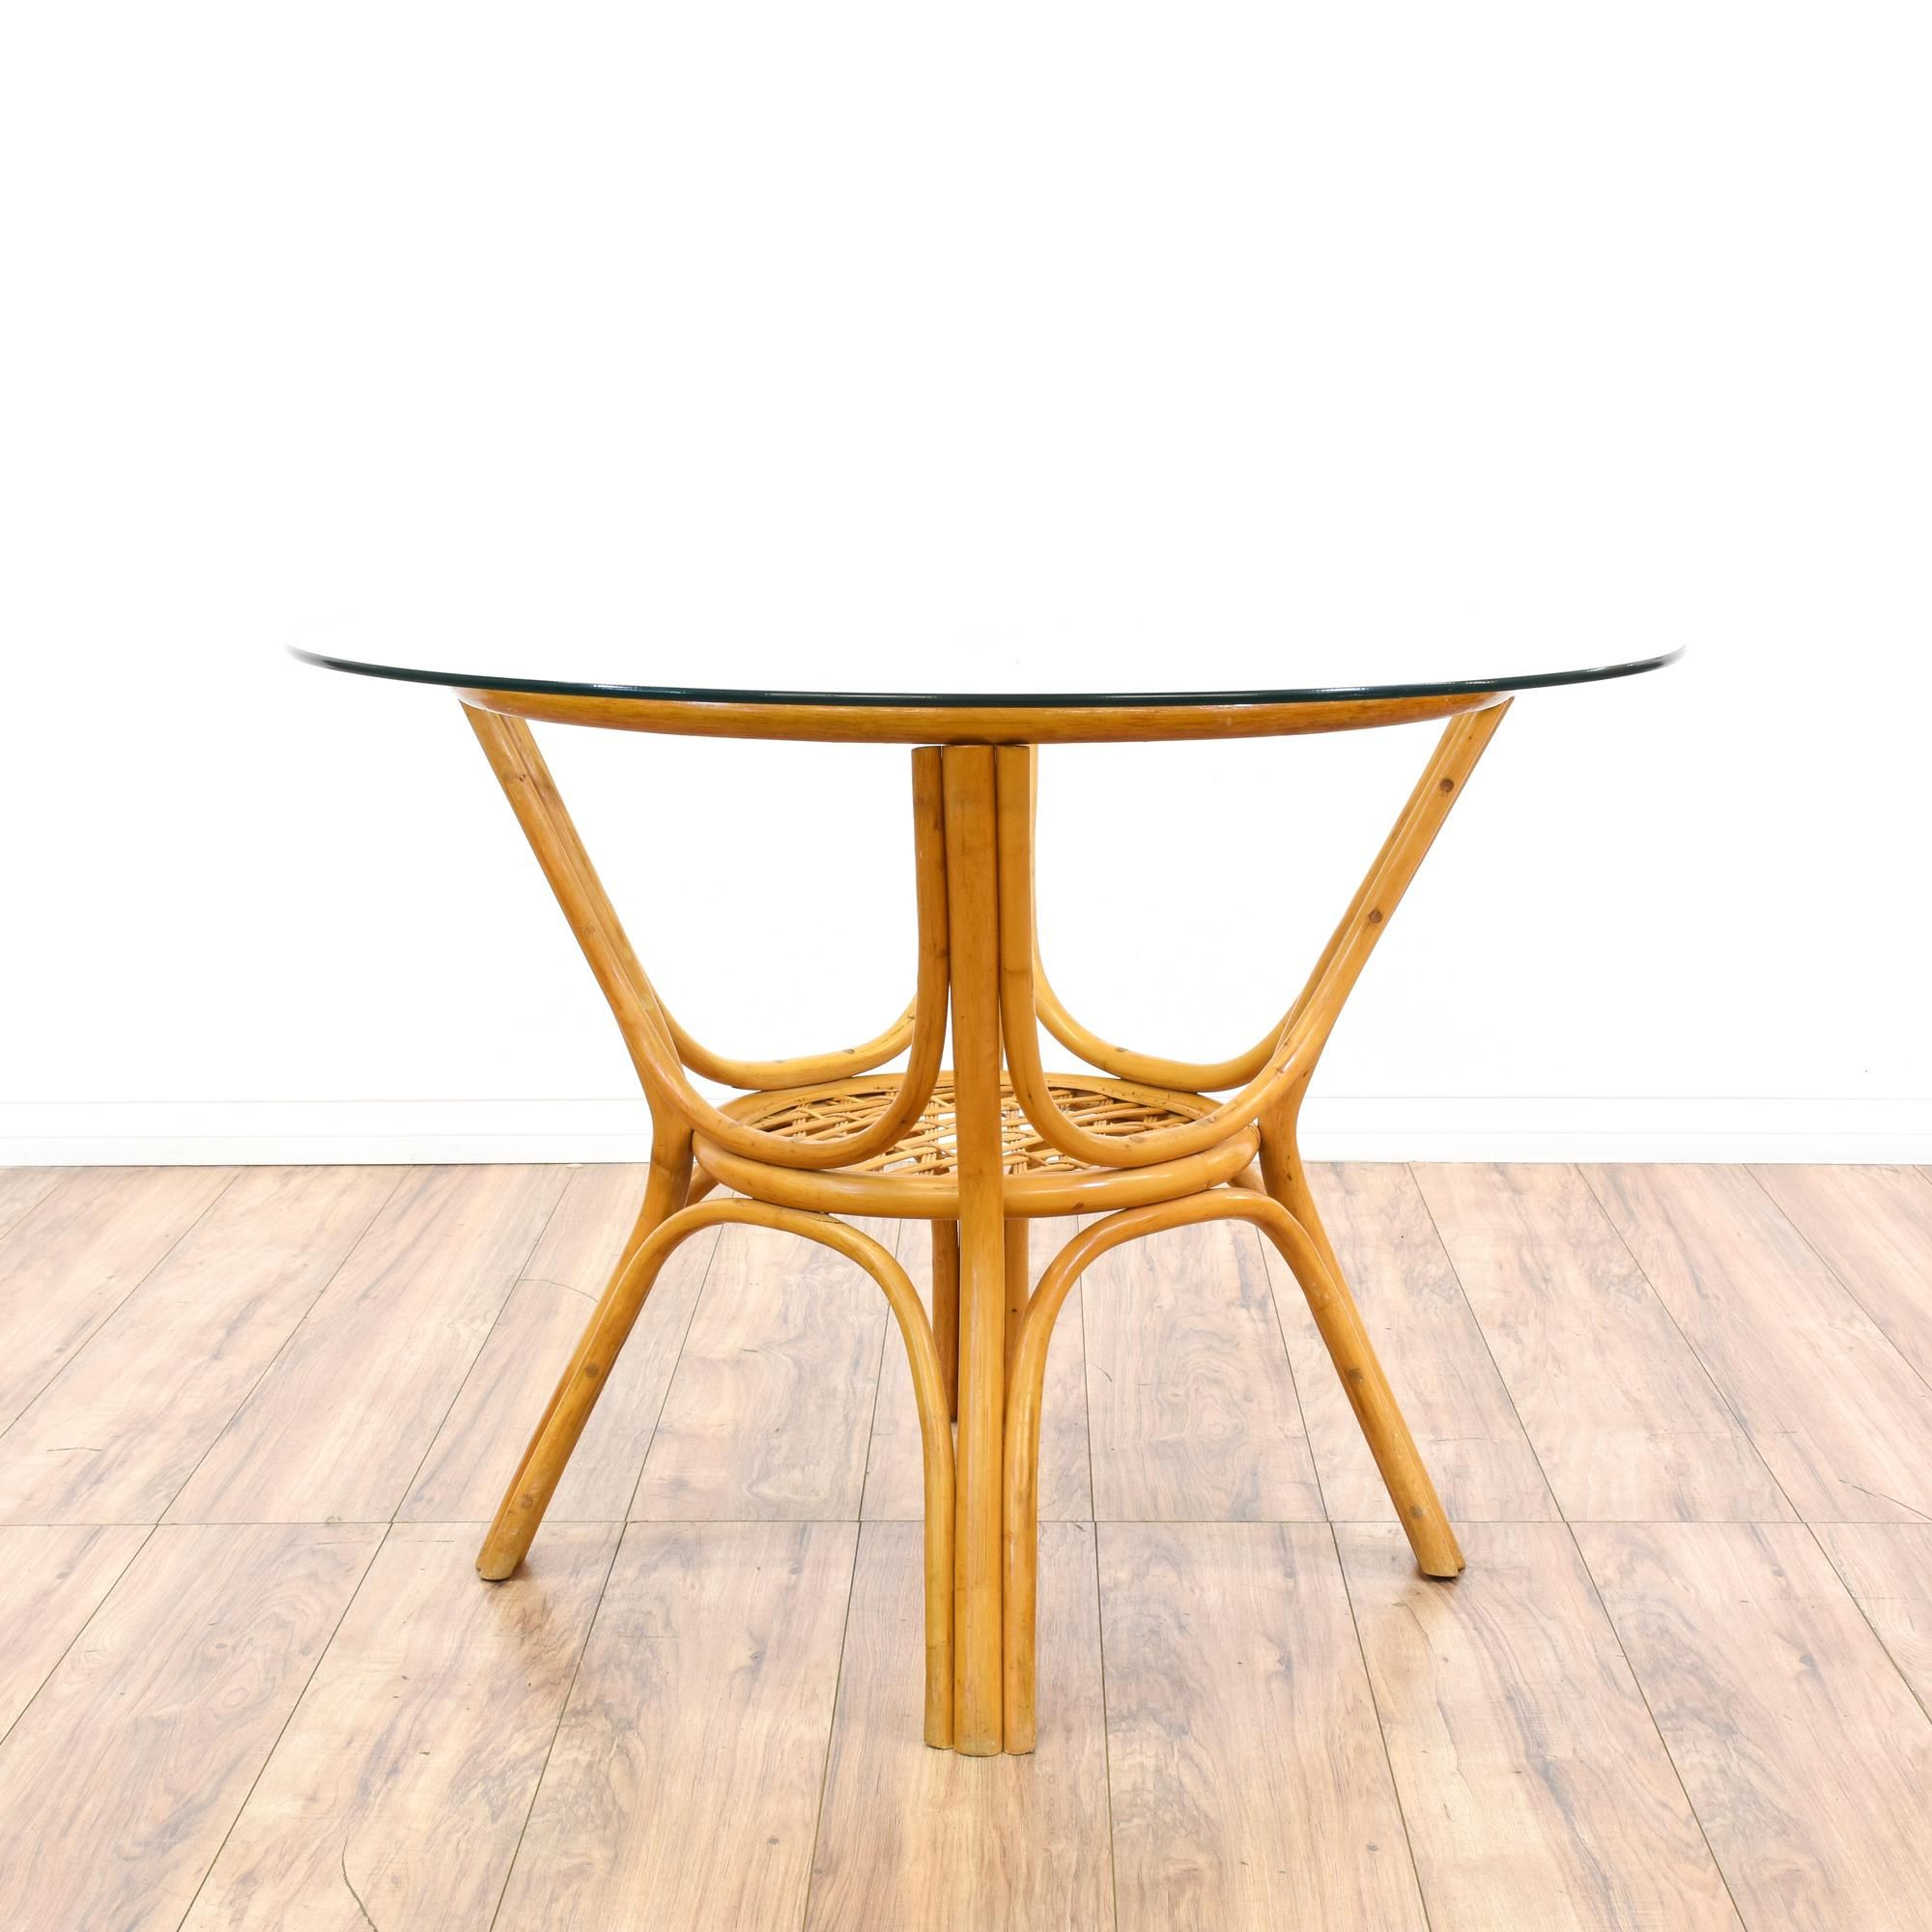 Tropical Rattan Glass Top Dining Table | Round glass table top